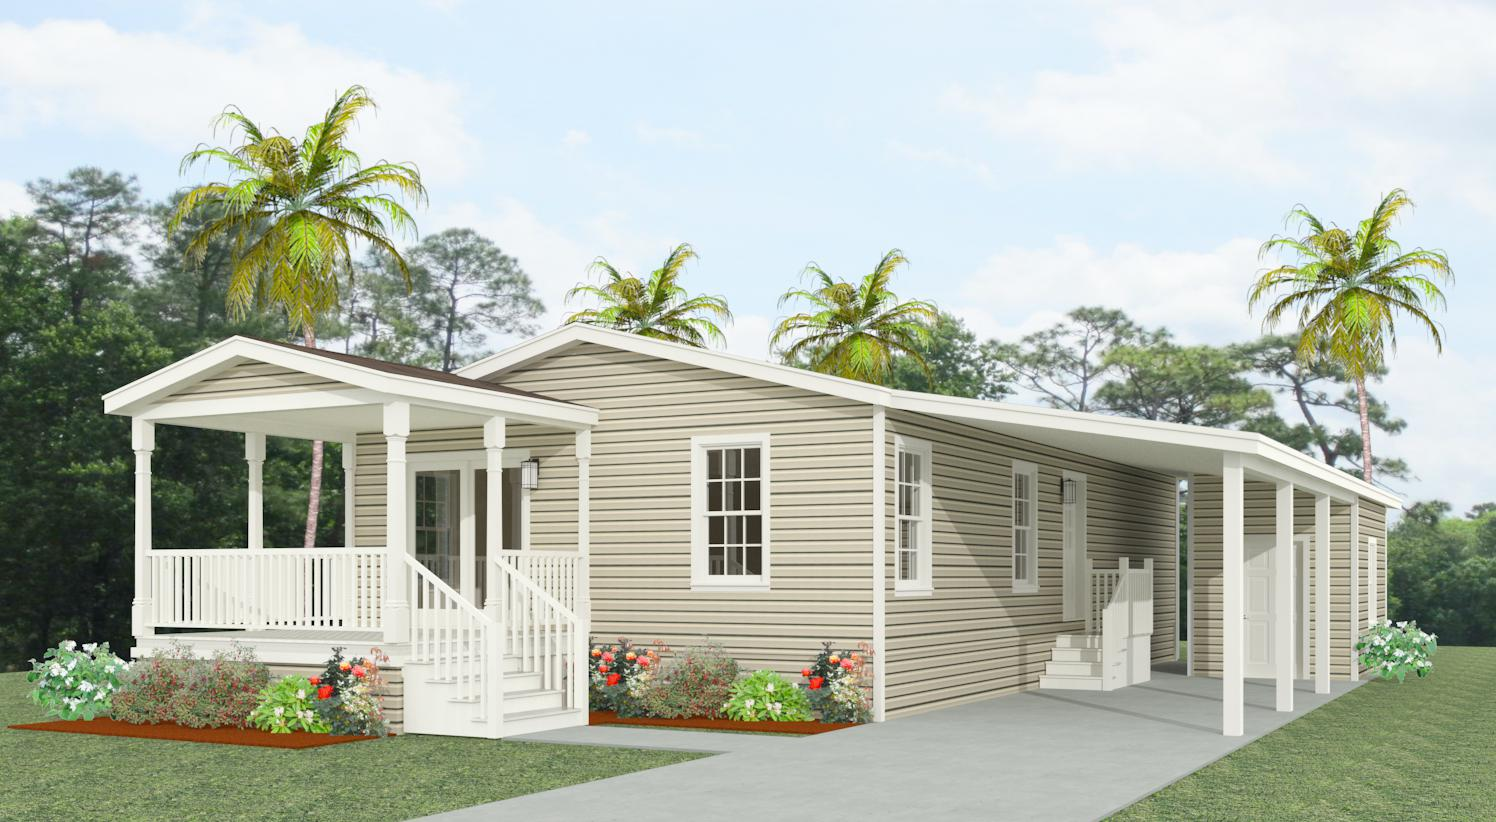 Exterior rendering of Jacobsen Home floor plan IMP-2421A